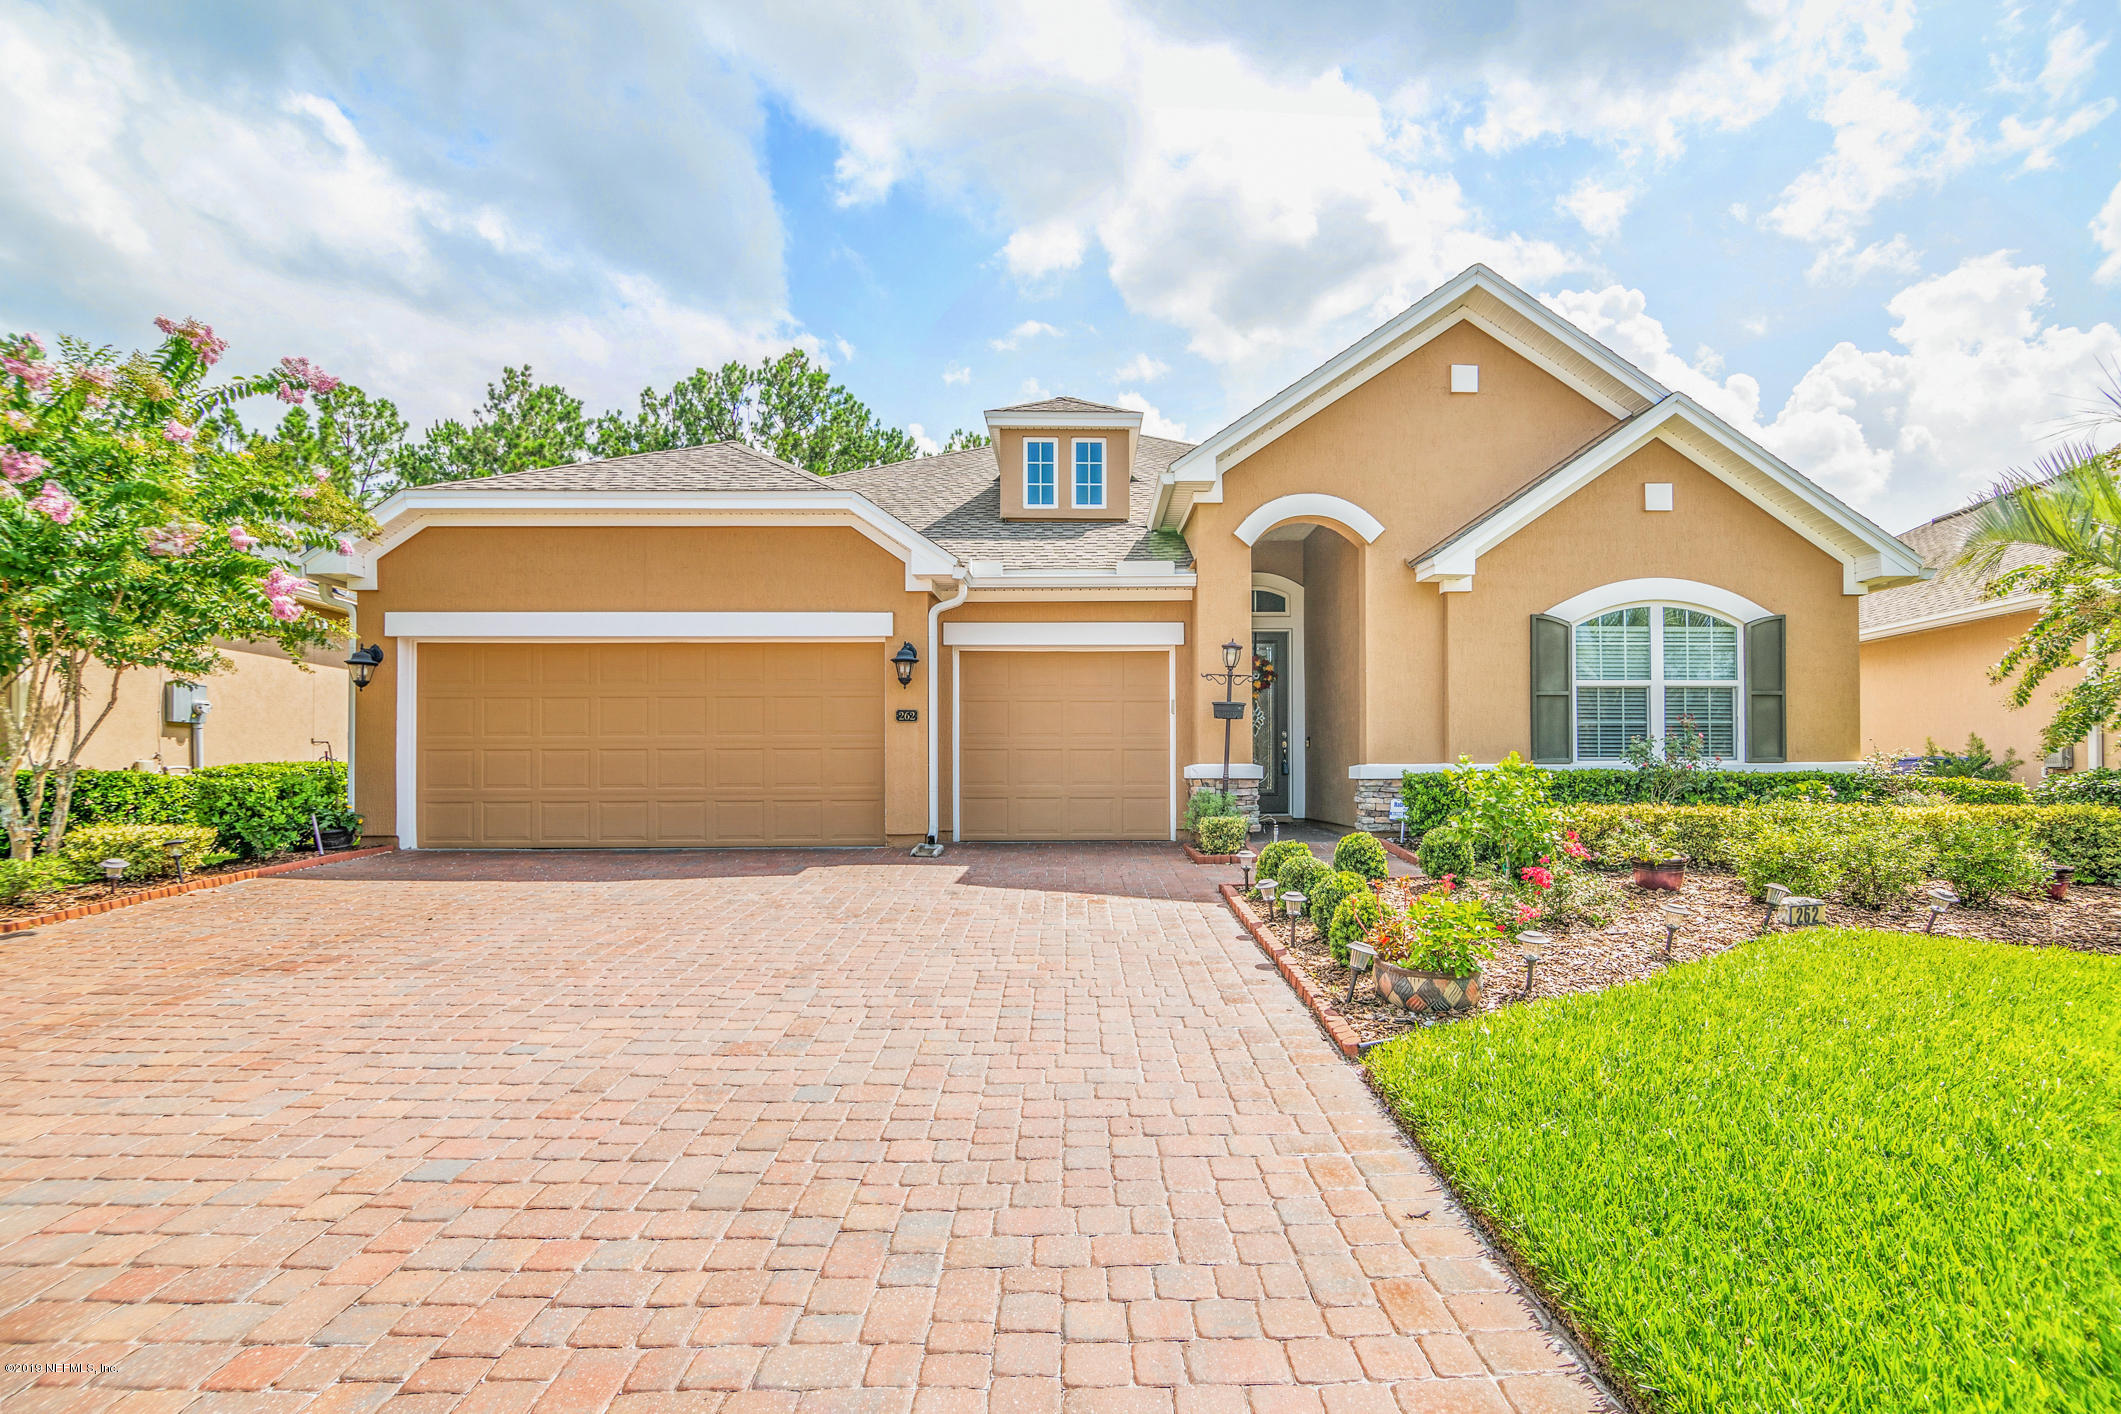 262 WOODLAND GREENS, PONTE VEDRA, FLORIDA 32081, 4 Bedrooms Bedrooms, ,4 BathroomsBathrooms,Residential - single family,For sale,WOODLAND GREENS,1004947